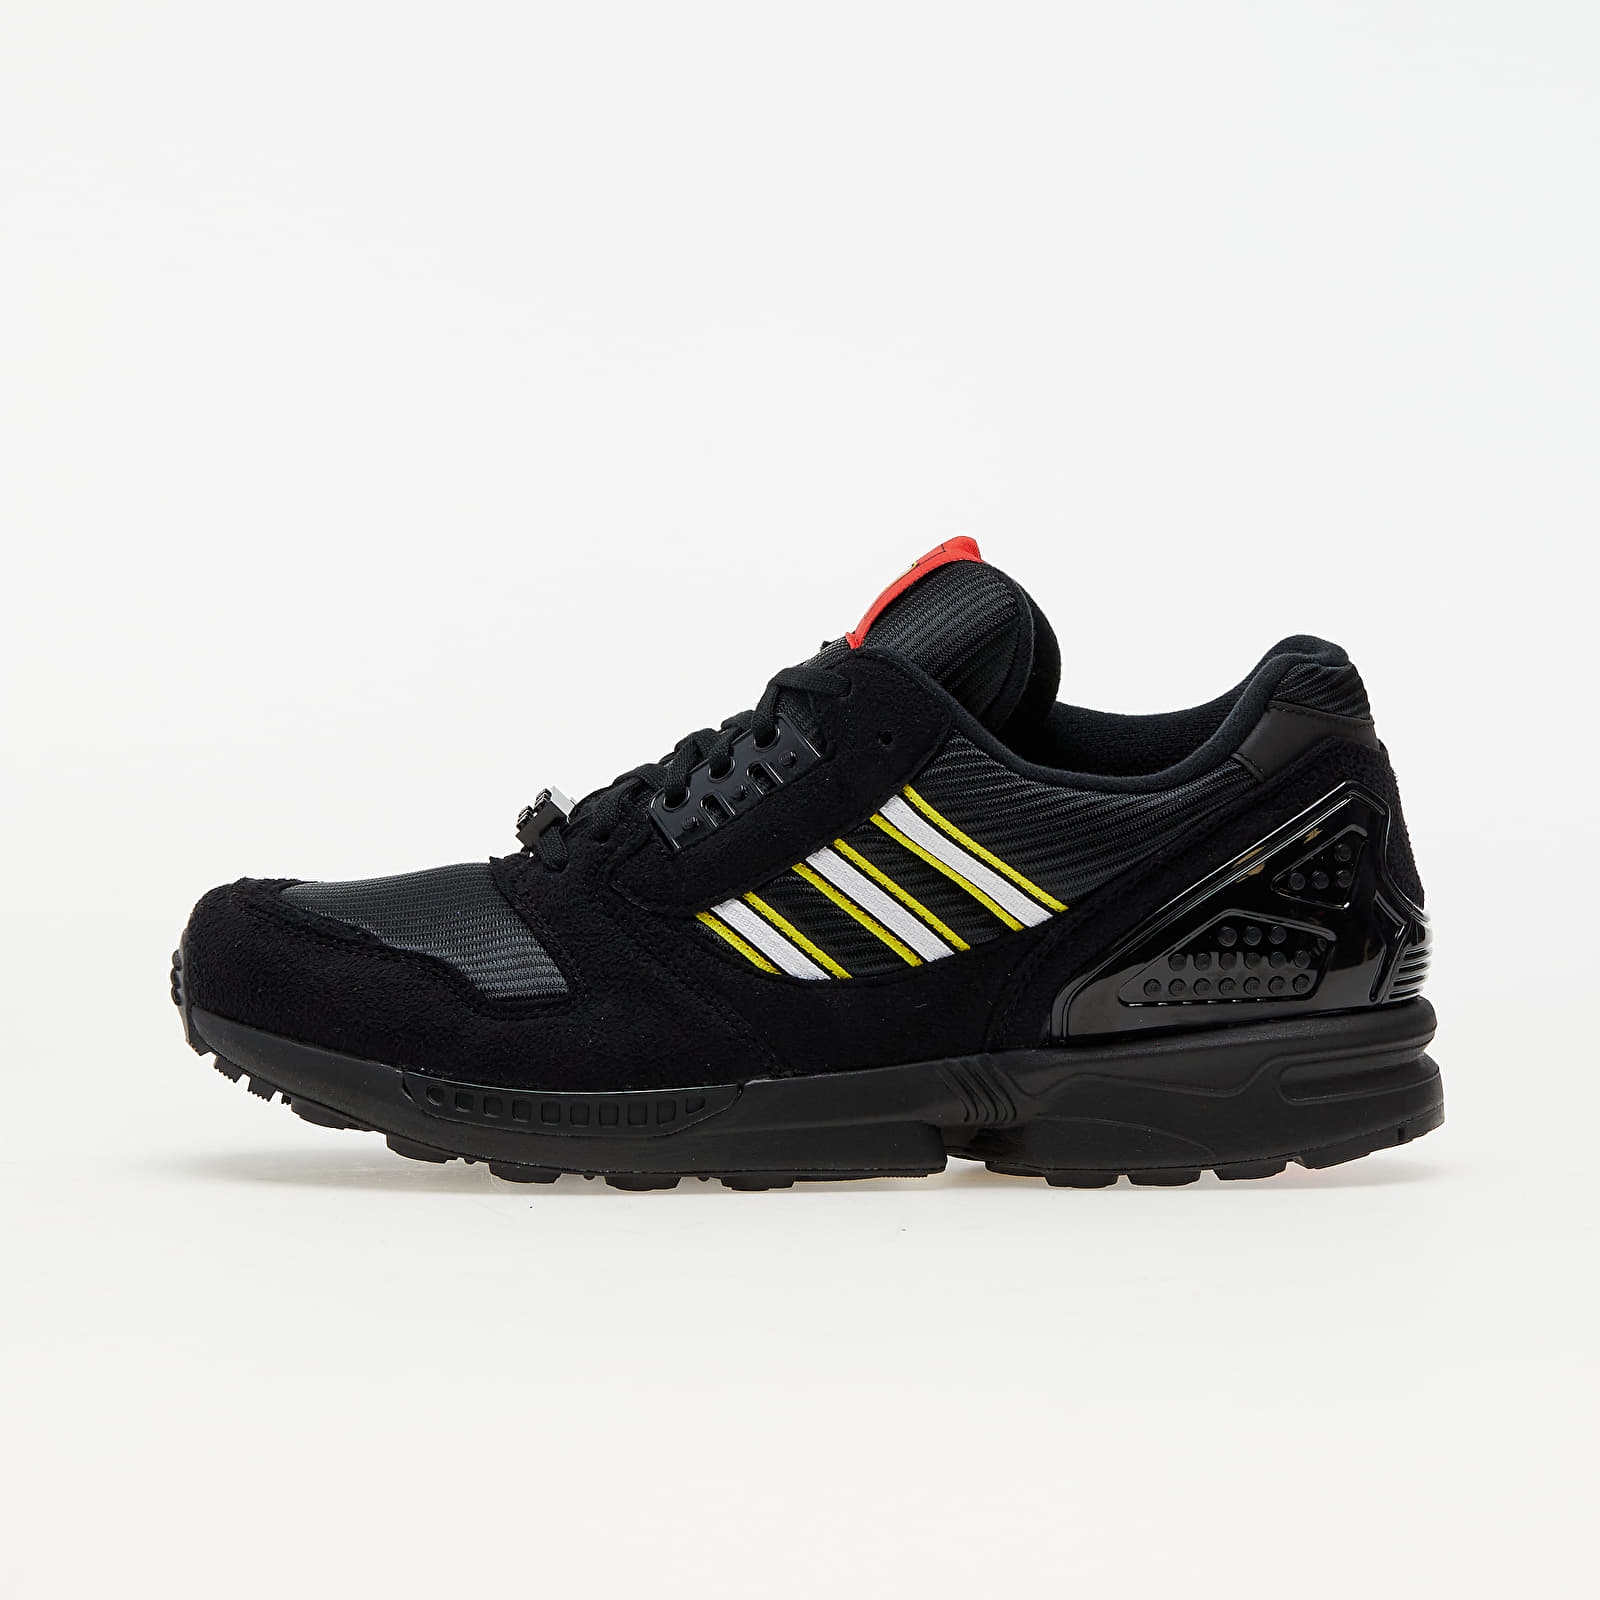 adidas ZX 8000 Lego Core Black/ Ftw White/ Core Black EUR 38